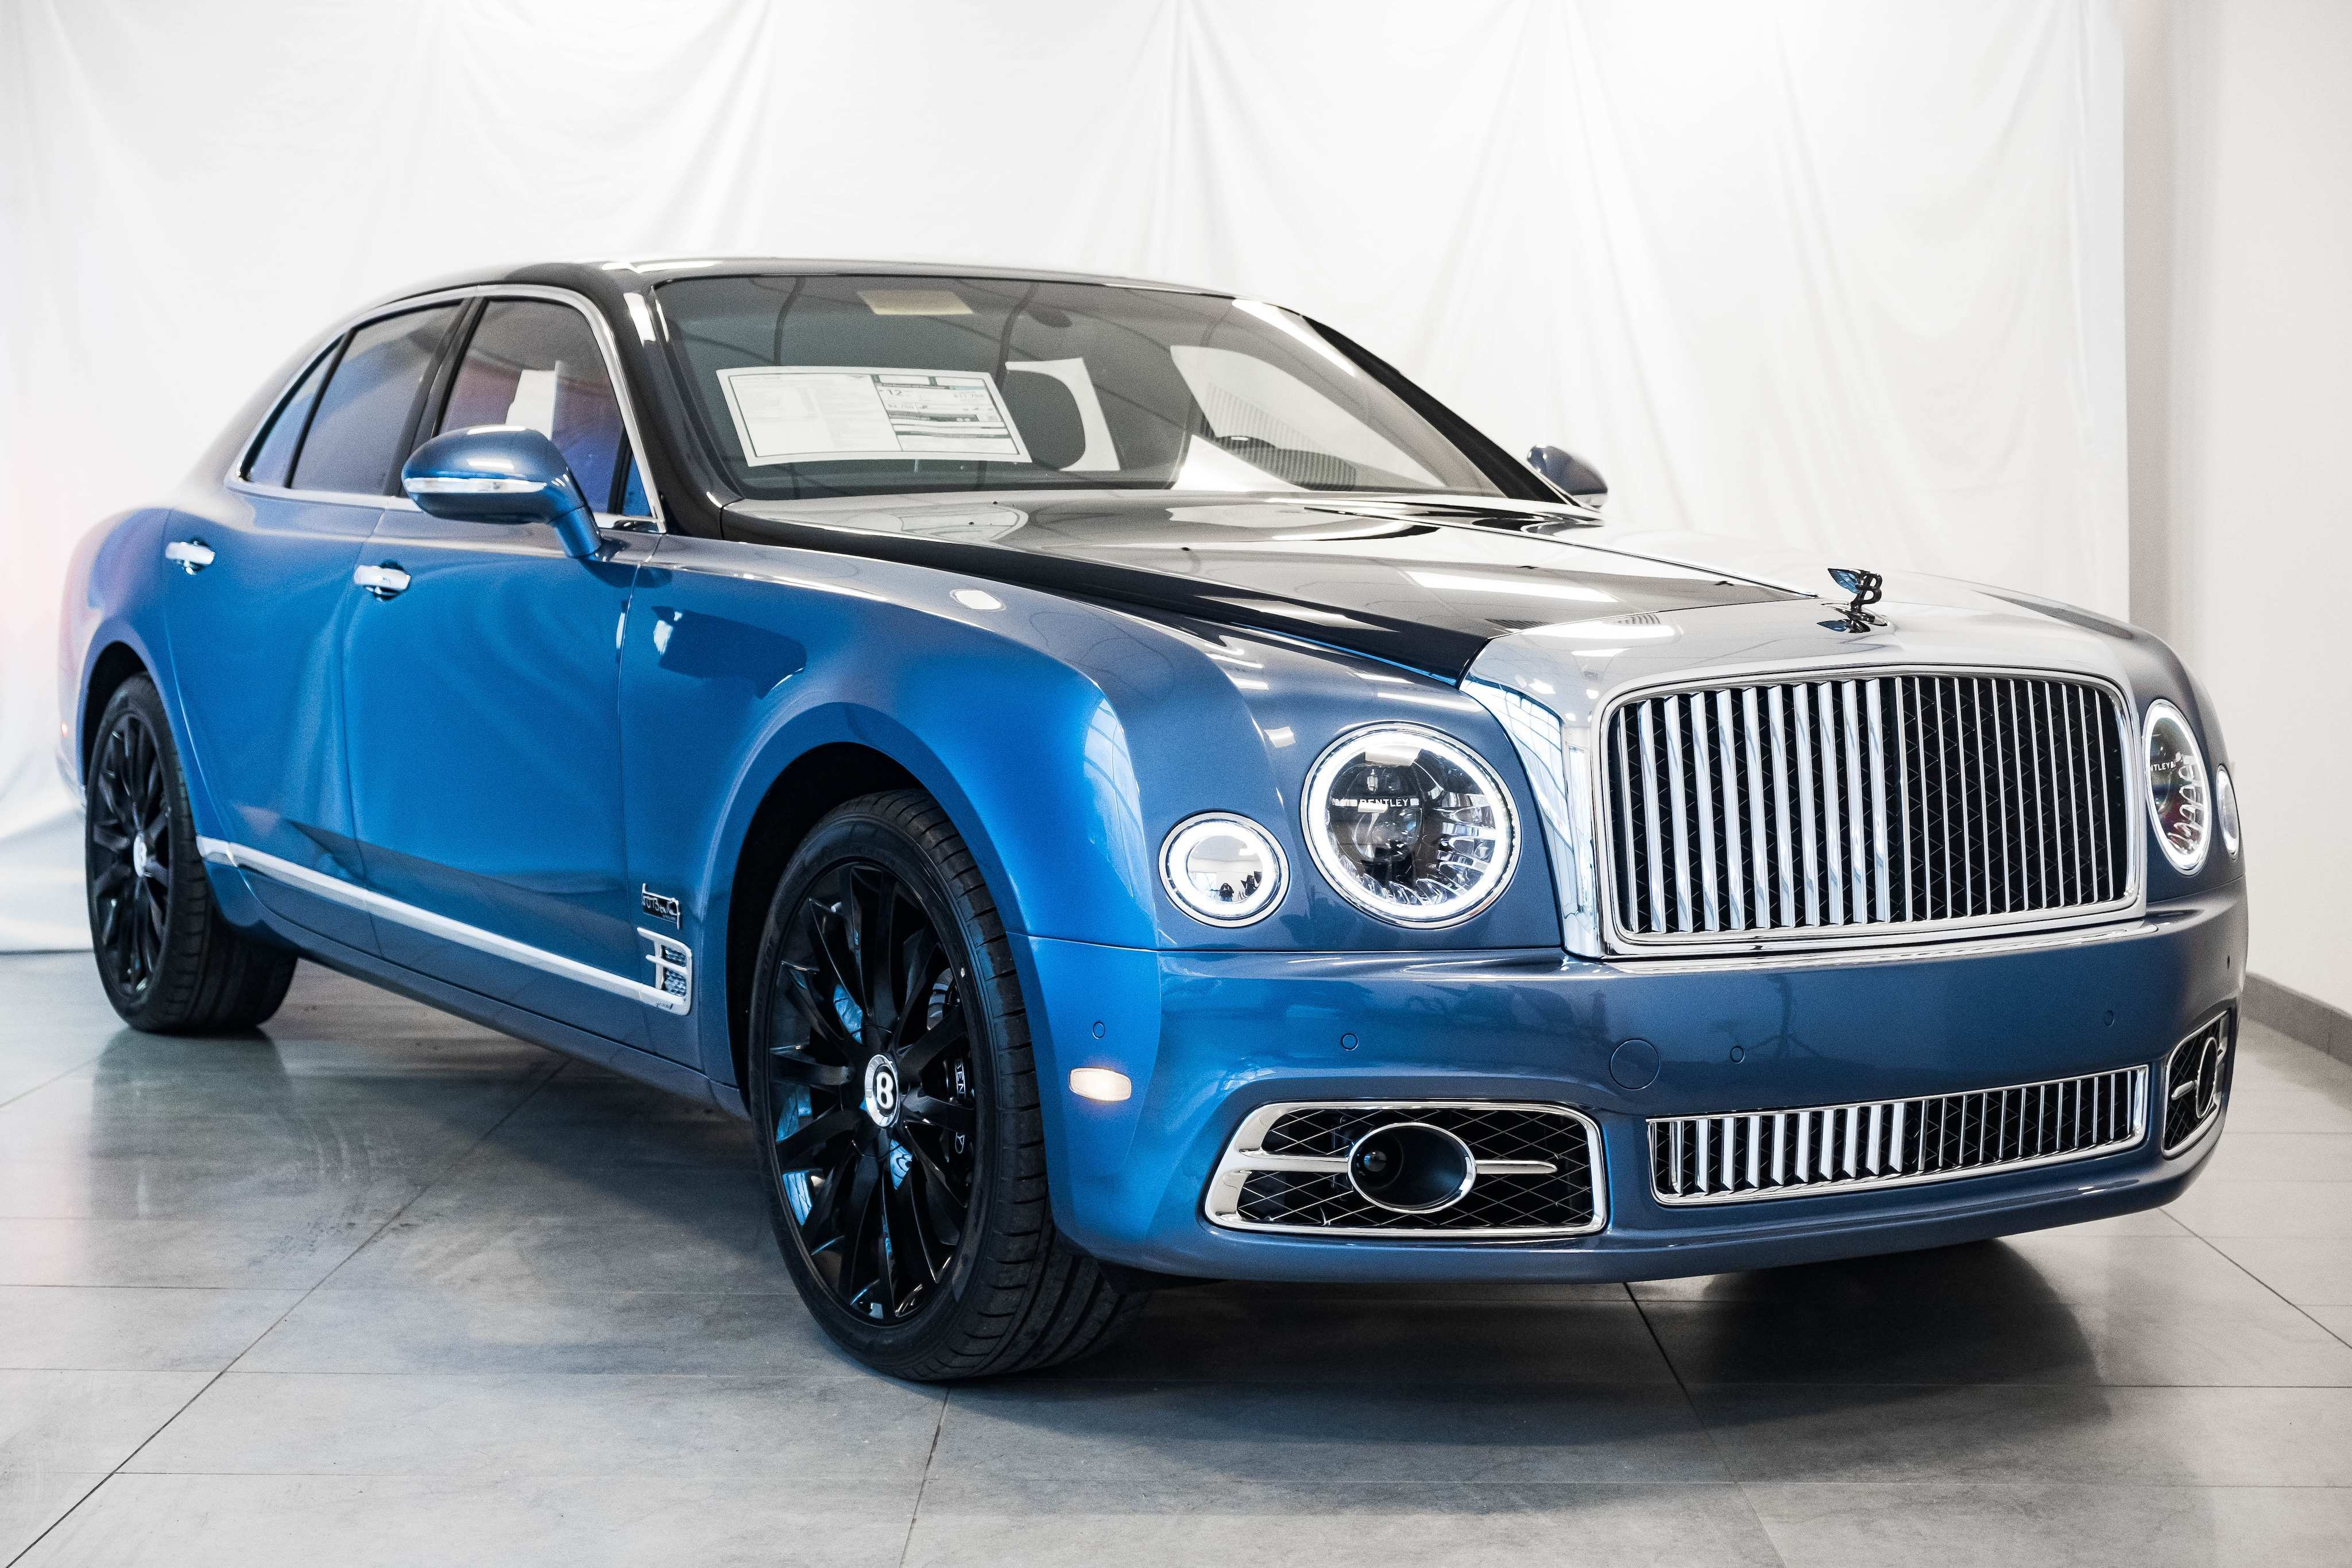 77 The Best 2019 Bentley Muslane Exterior